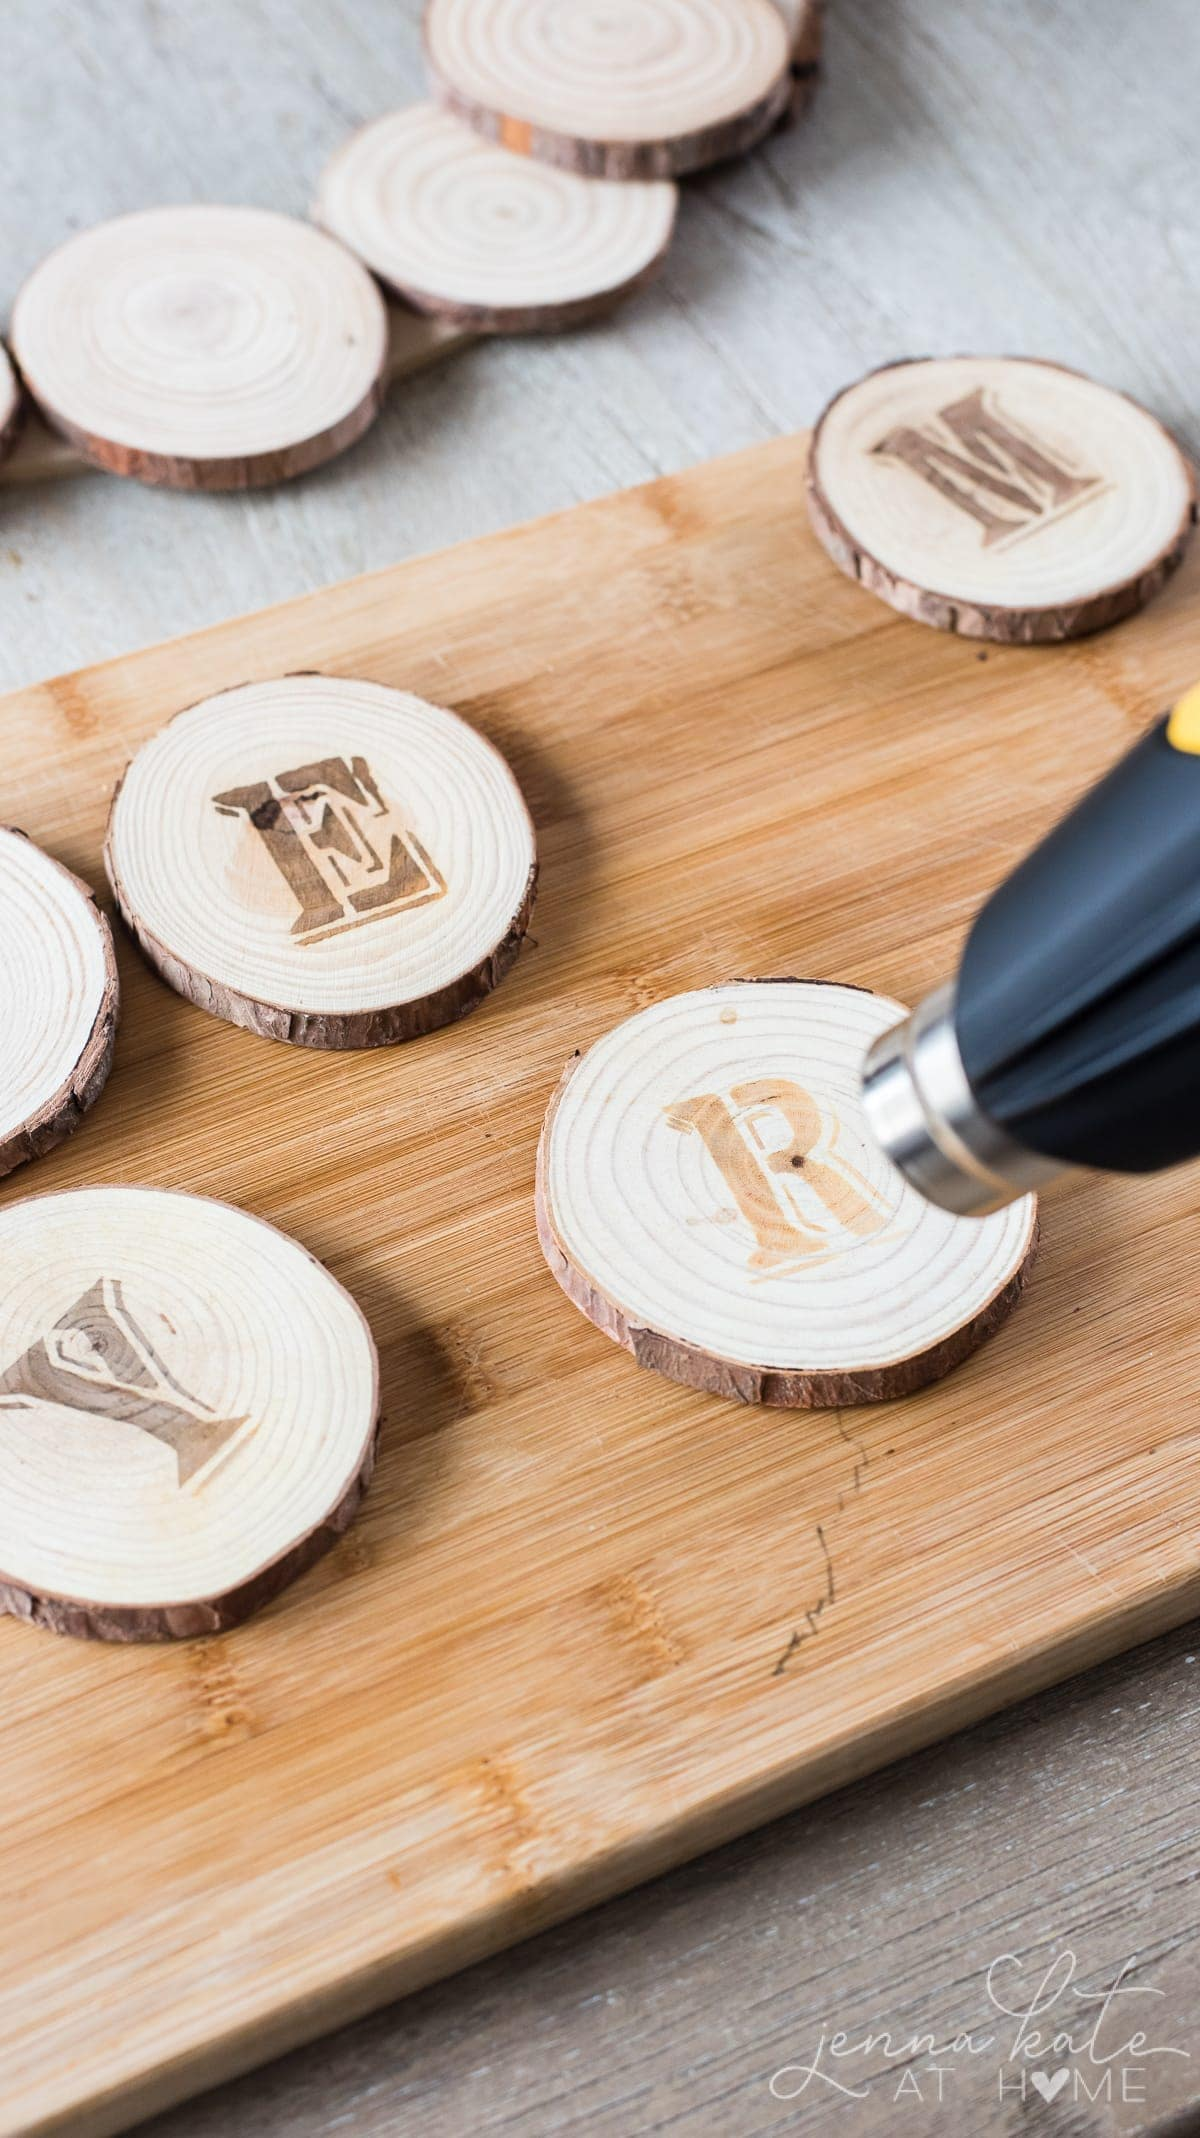 Using the heat gun to burn the stencil imprint into the wood